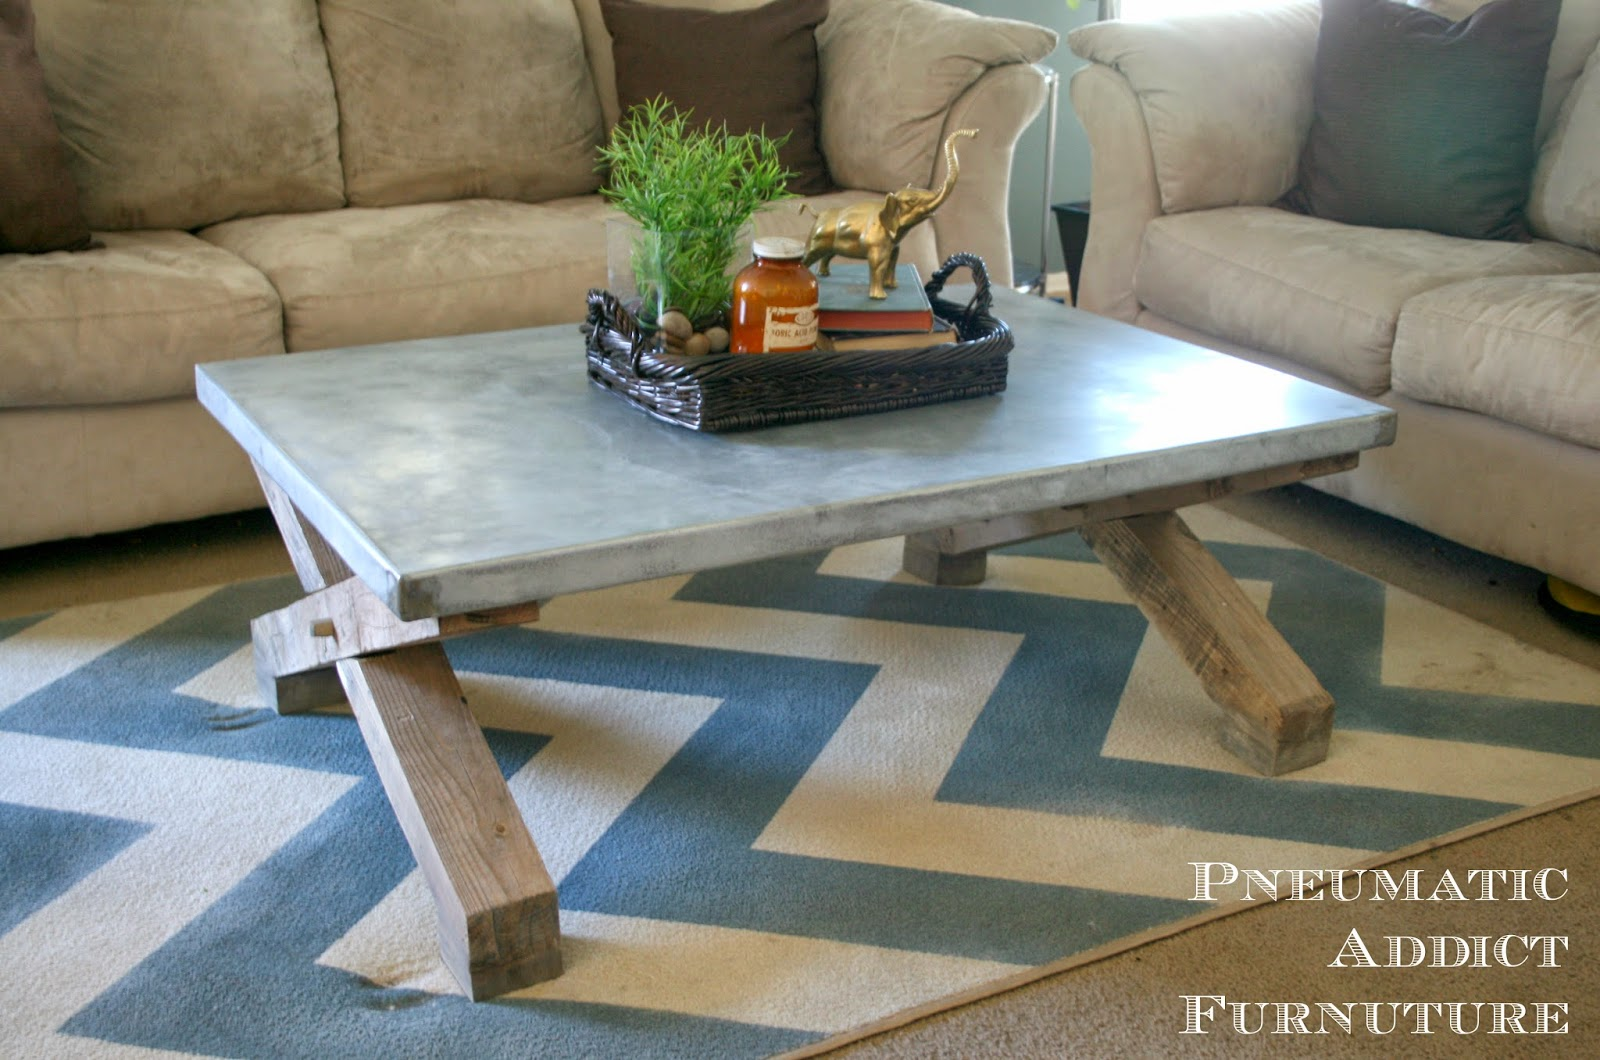 Zinc Top Coffee Table Tutorial: Pottery Barn Knock Off | Pneumatic Addict